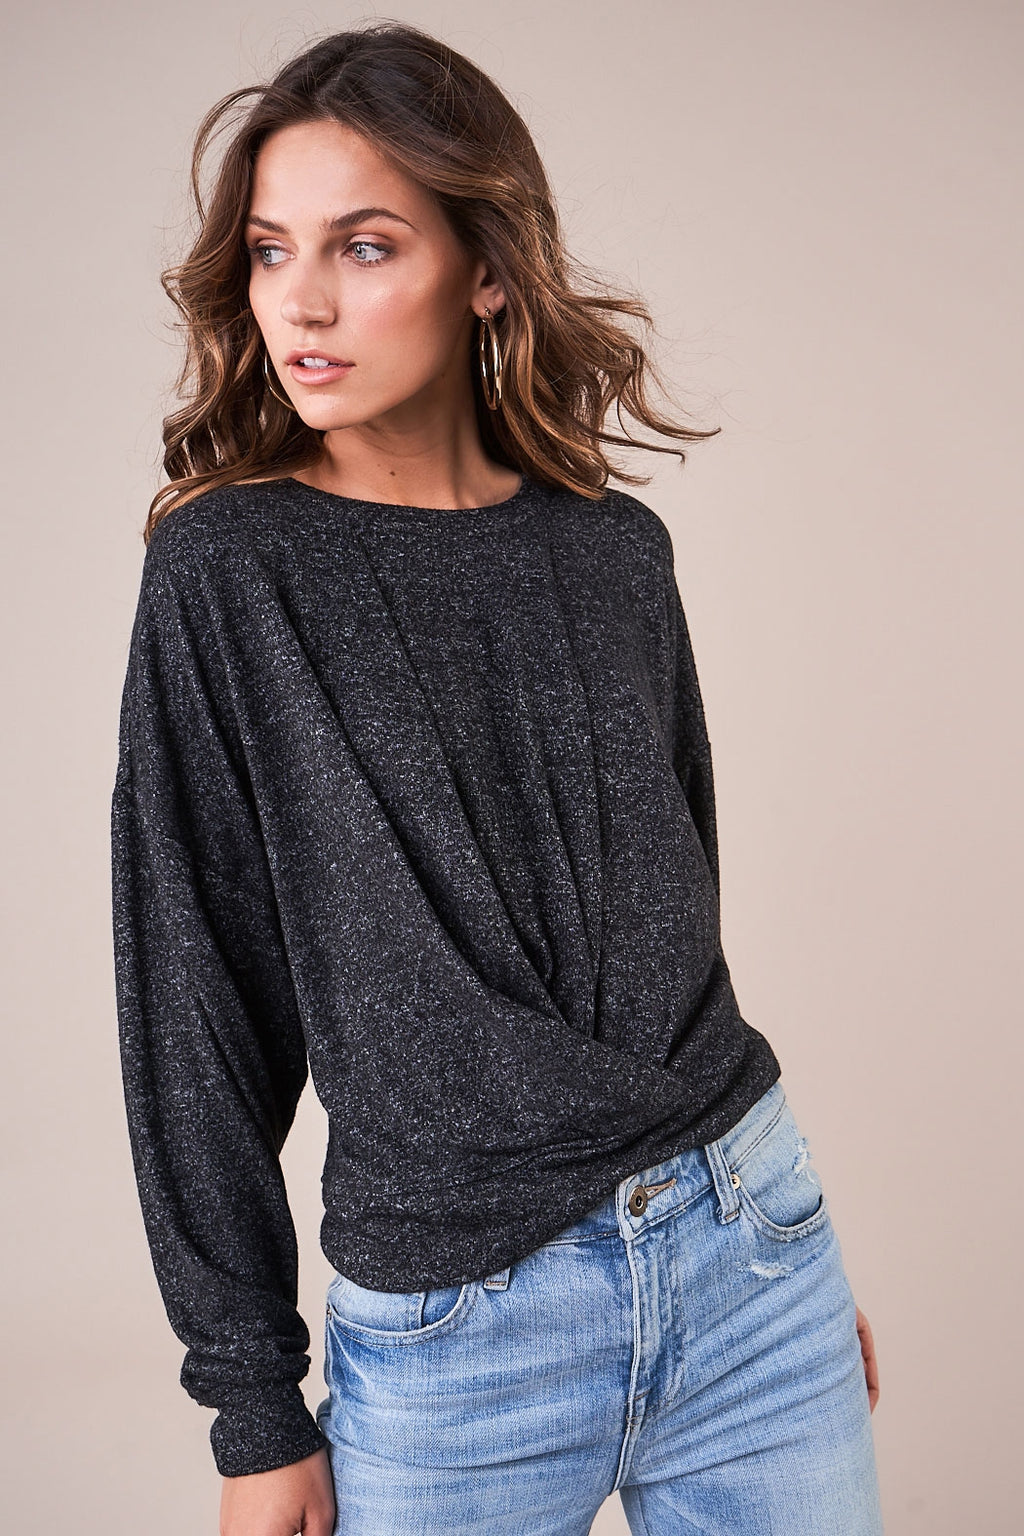 UNIKONCEPT: Lifestyle boutique; Image shows a grey long sleeve knit sweater by sugar lips. The cozy twist knit features a crew neckline and a twisted bottom waistband. It his dark grey in colour.